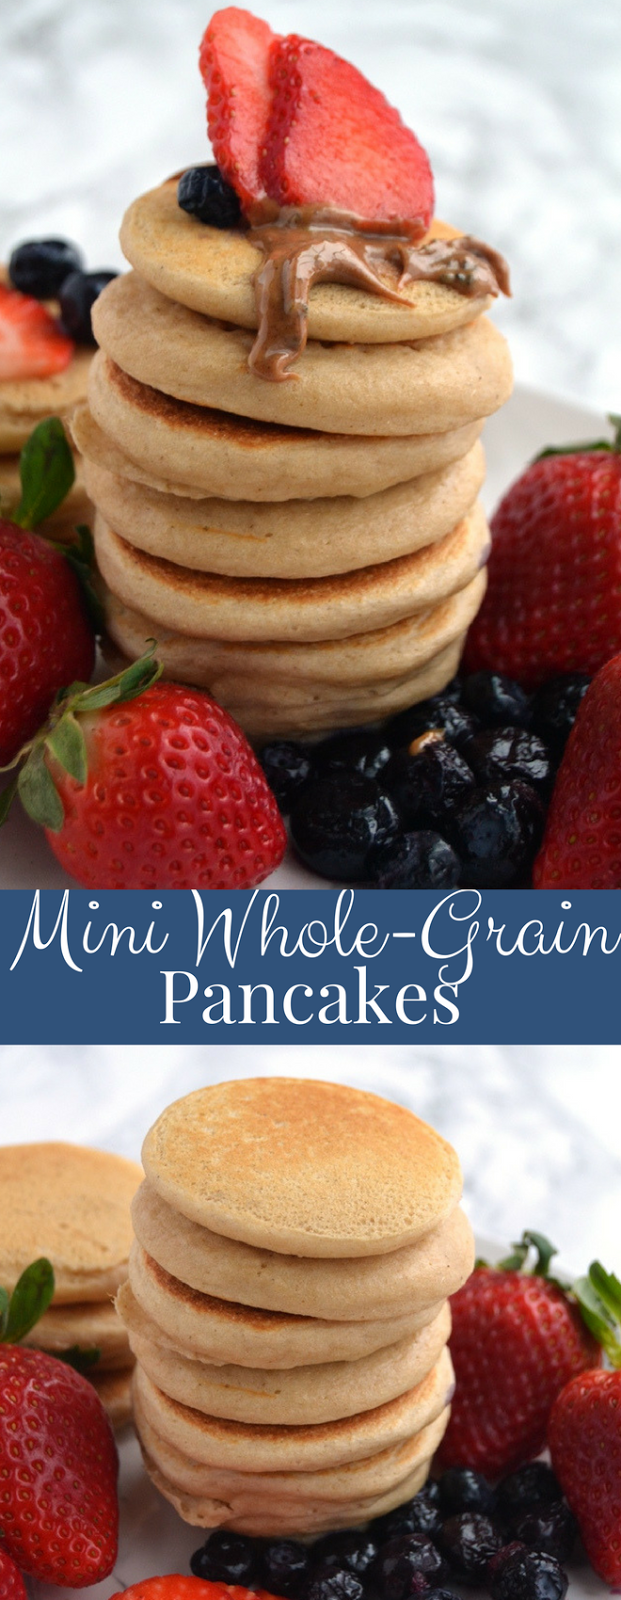 Mini Whole-Grain Pancakes are easy to make and nutritious! Make a large batch and freeze for easy breakfasts and snacks for toddlers! Gluten-free and made with oats. www.nutritionistreviews.com